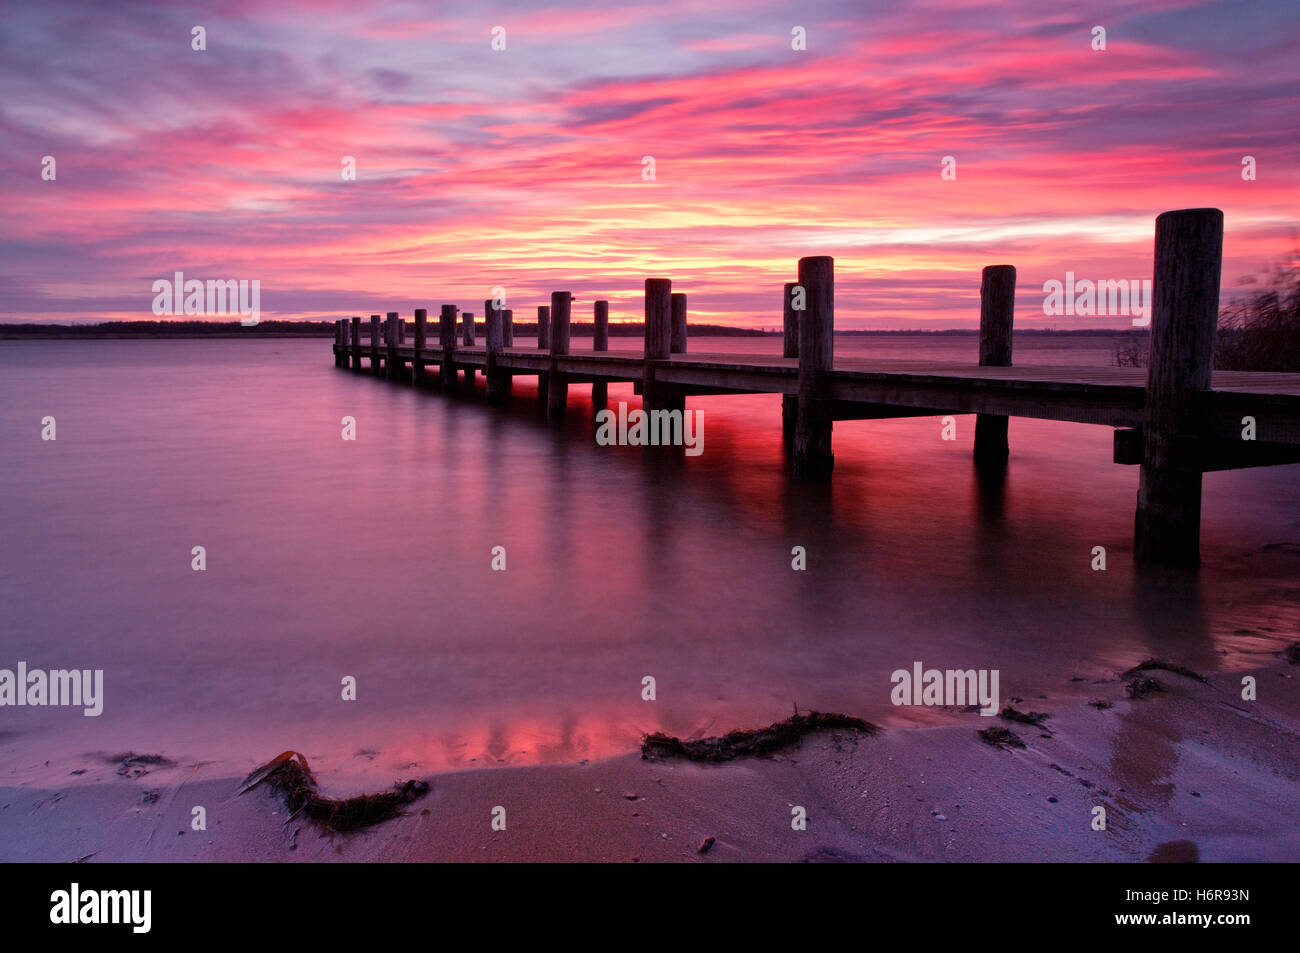 sunrise bridge poeaurora fresh water lake inland water water bank red shore shine shines bright lucent light serene - Stock Image